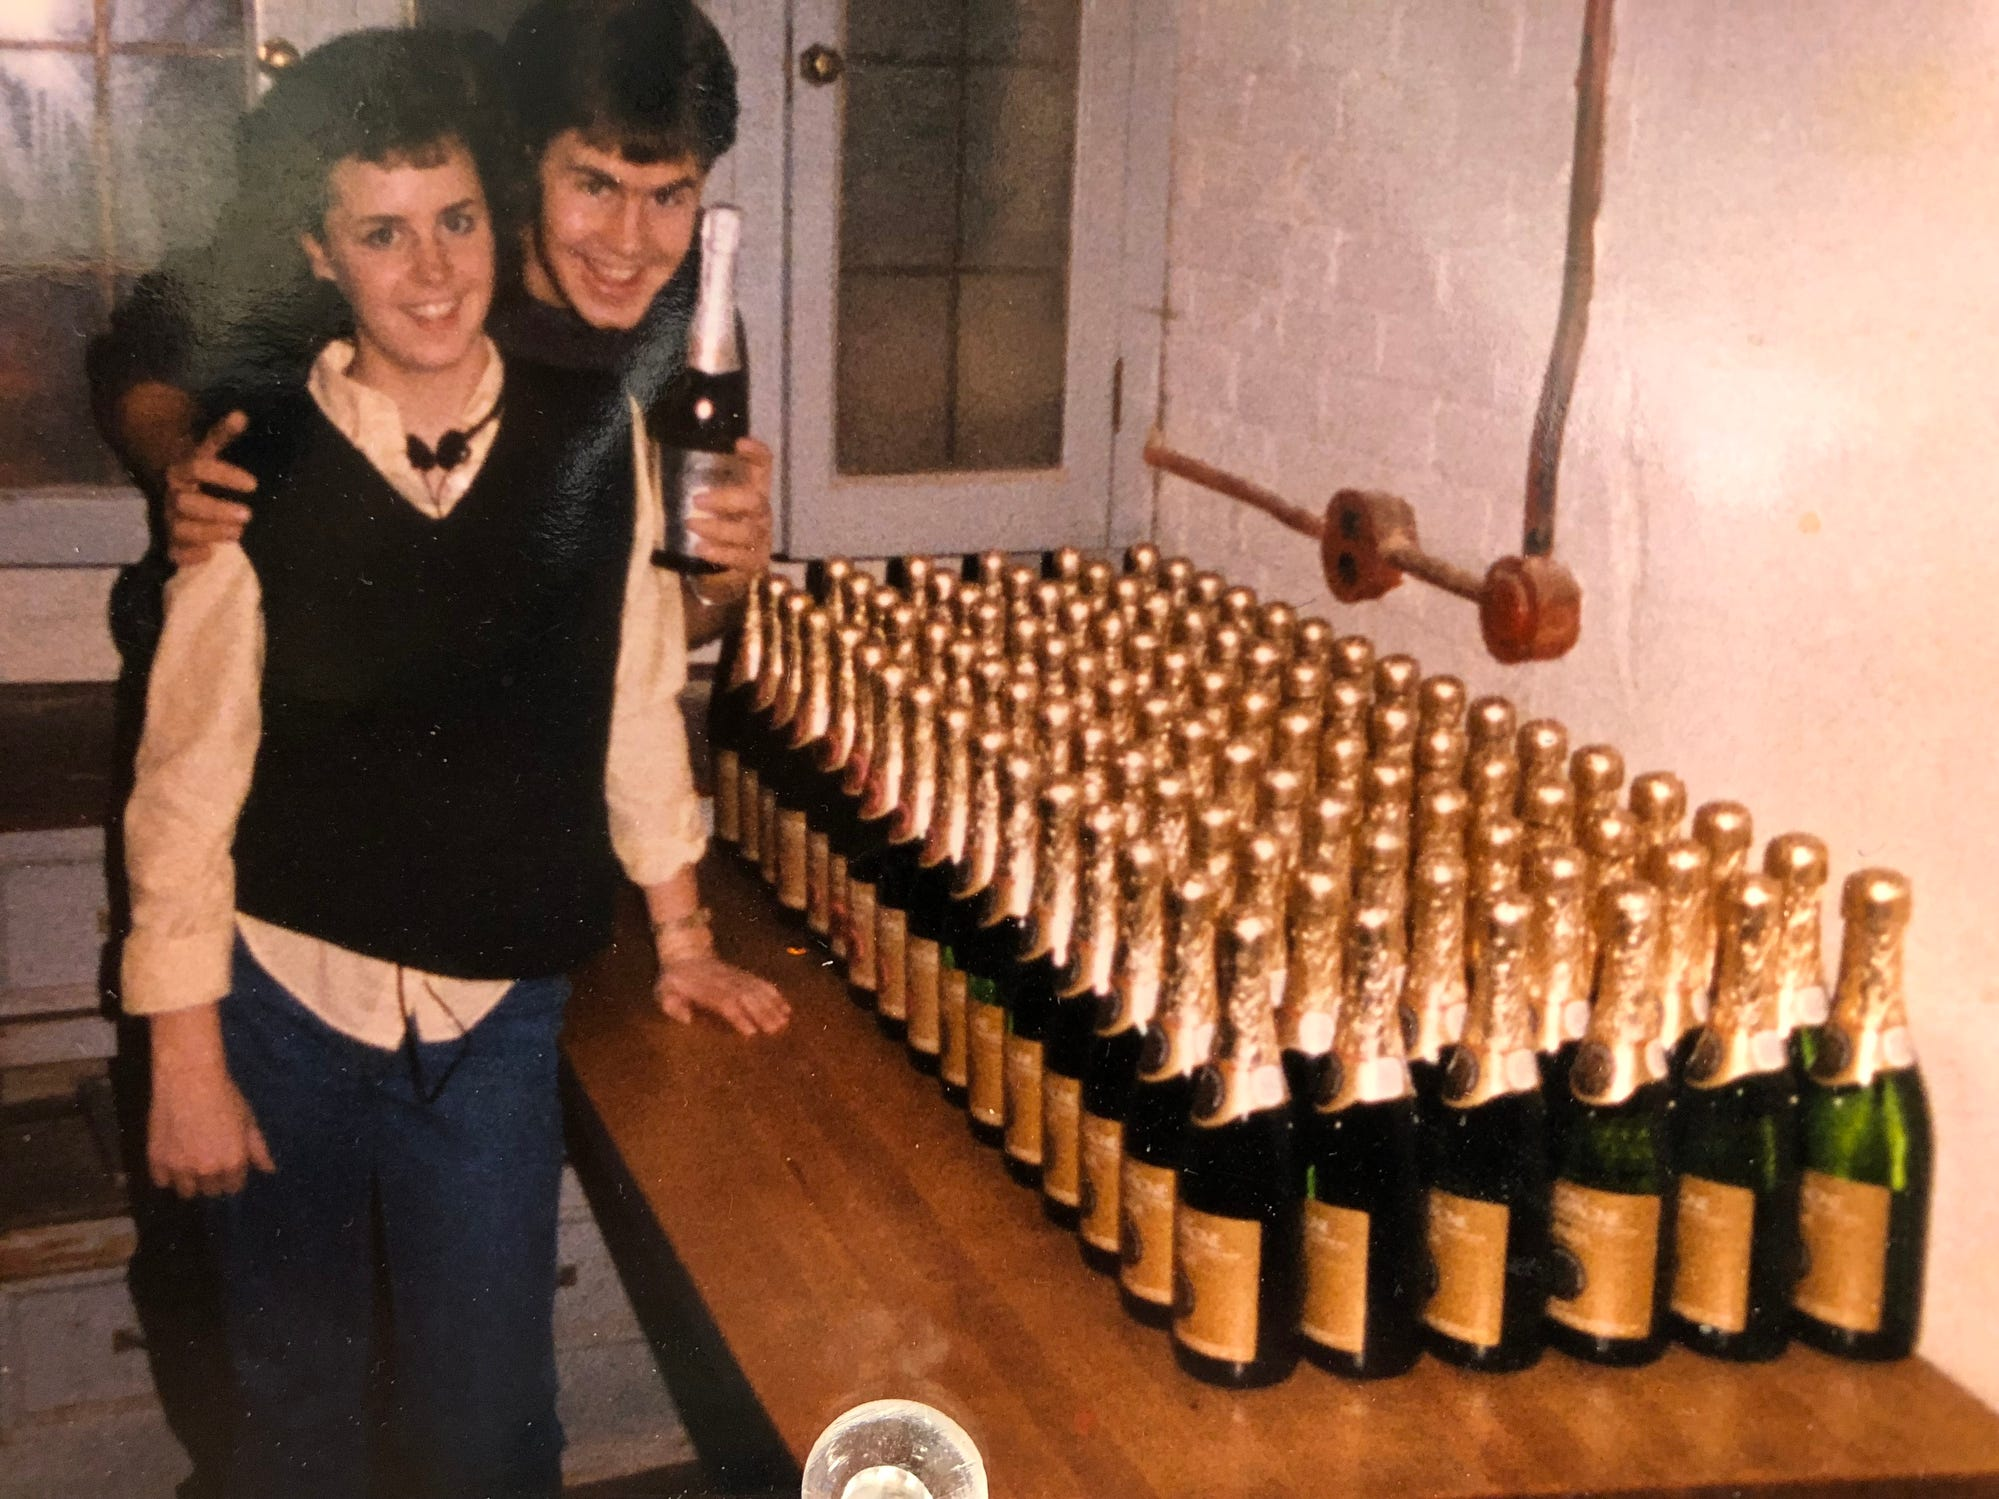 Nearly 100 bottles of champagne stood ready for a New Year's Eve party in 1984 run by Jen O'Neill and her brother, Matt, shown here.